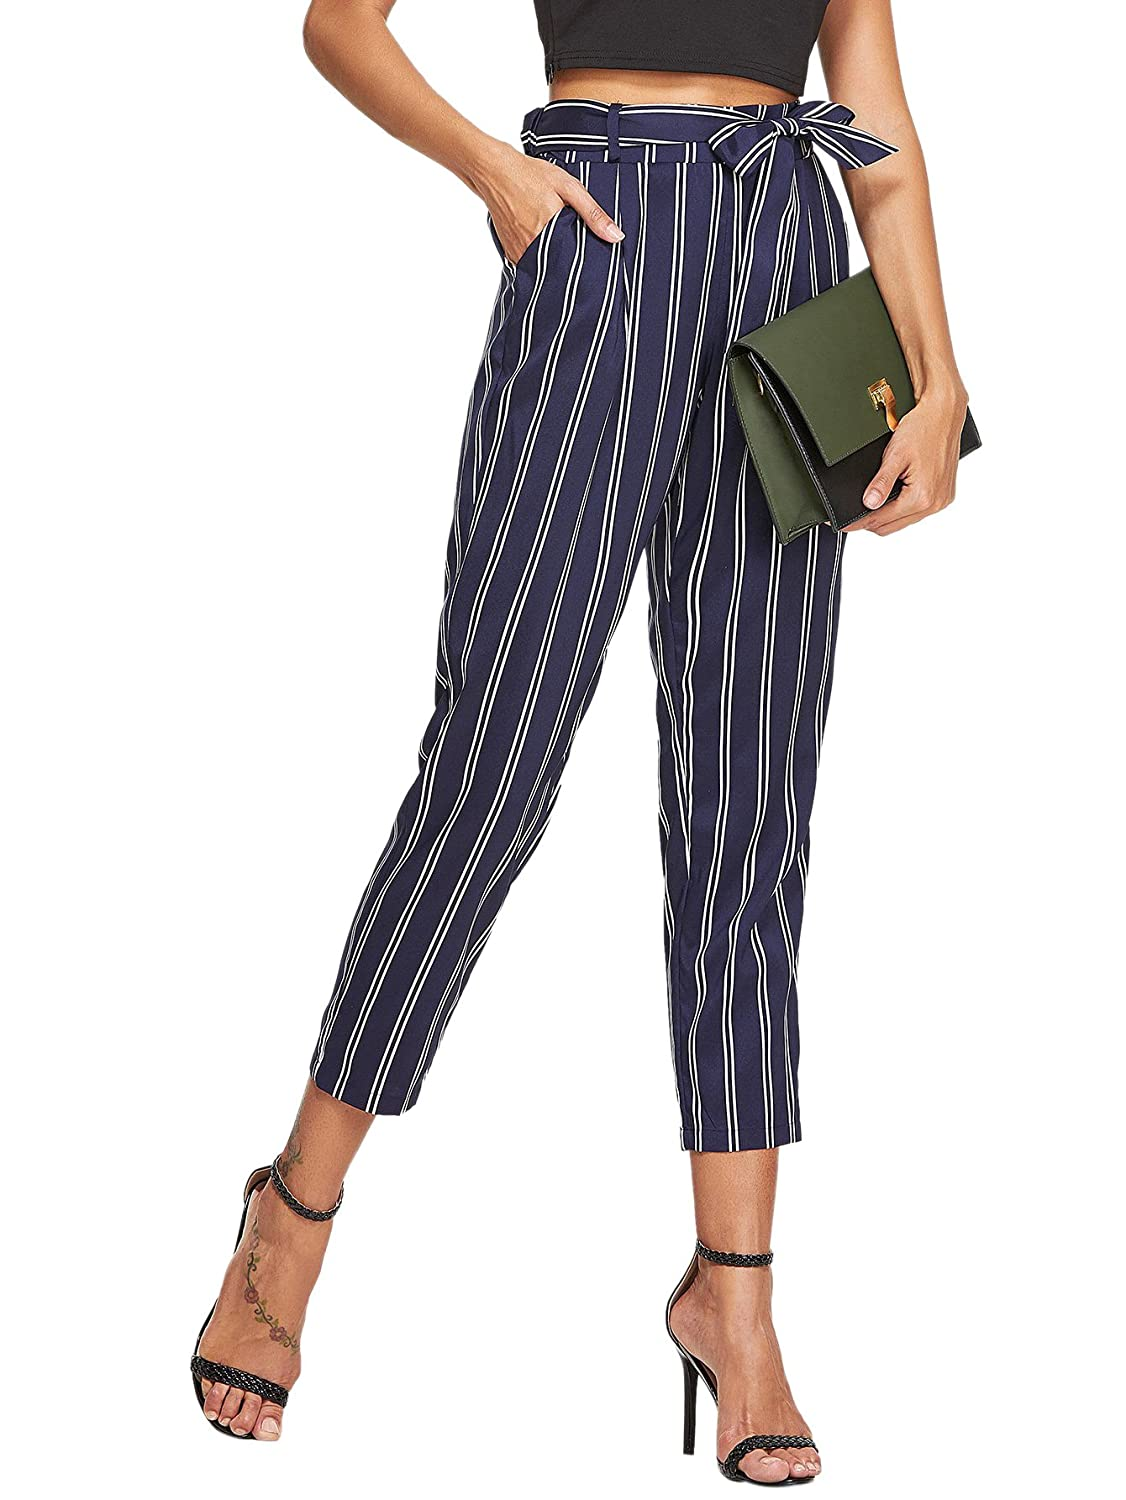 55db9b46643b SheIn Women's Self Belt Elastic Waist Striped Pants with Pockets Large Navy  at Amazon Women's Clothing store: